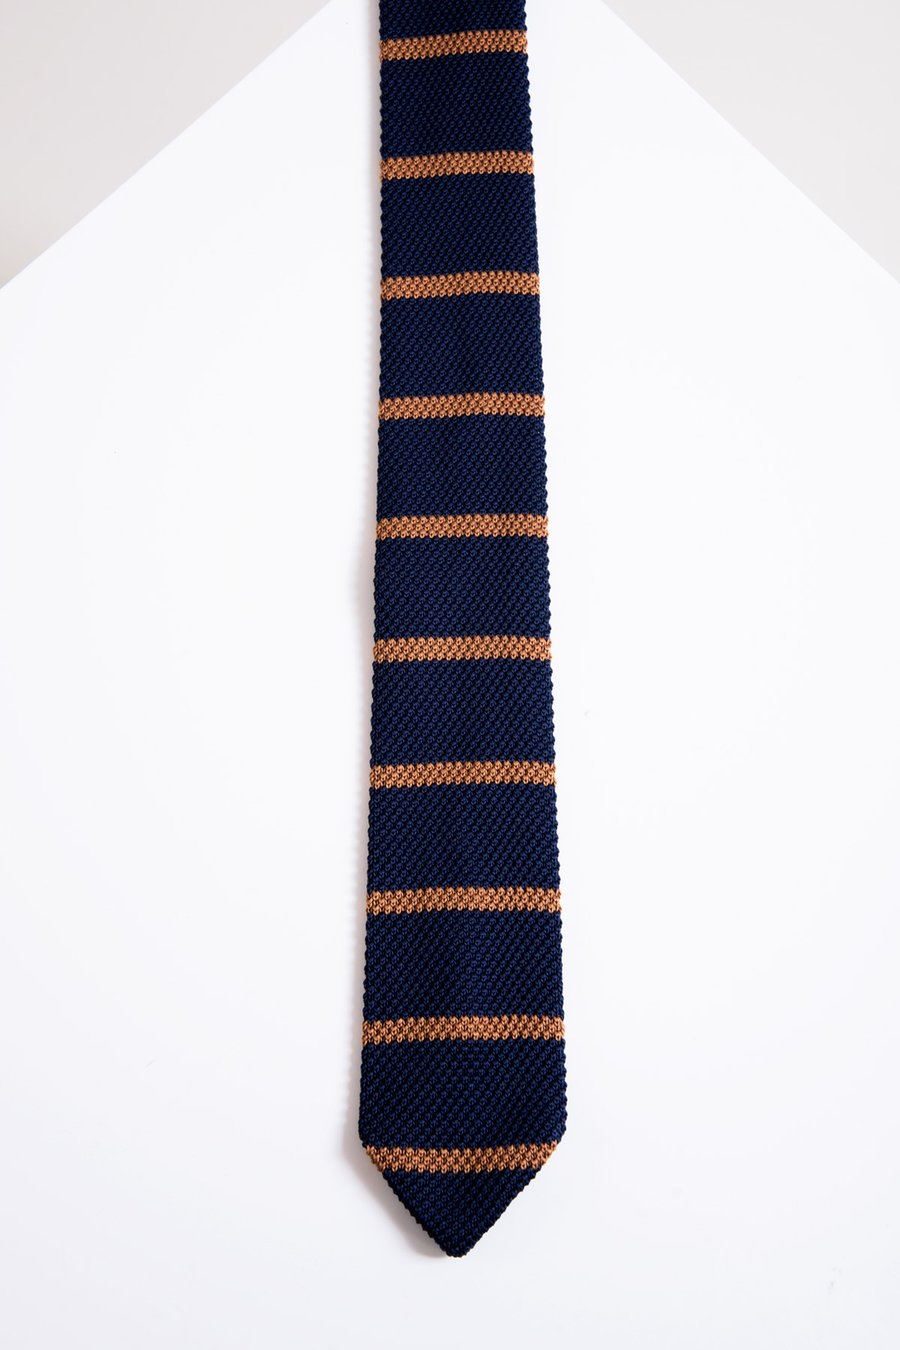 KTP Navy Tan Stripe Knitted Tie - Wedding Suit Direct